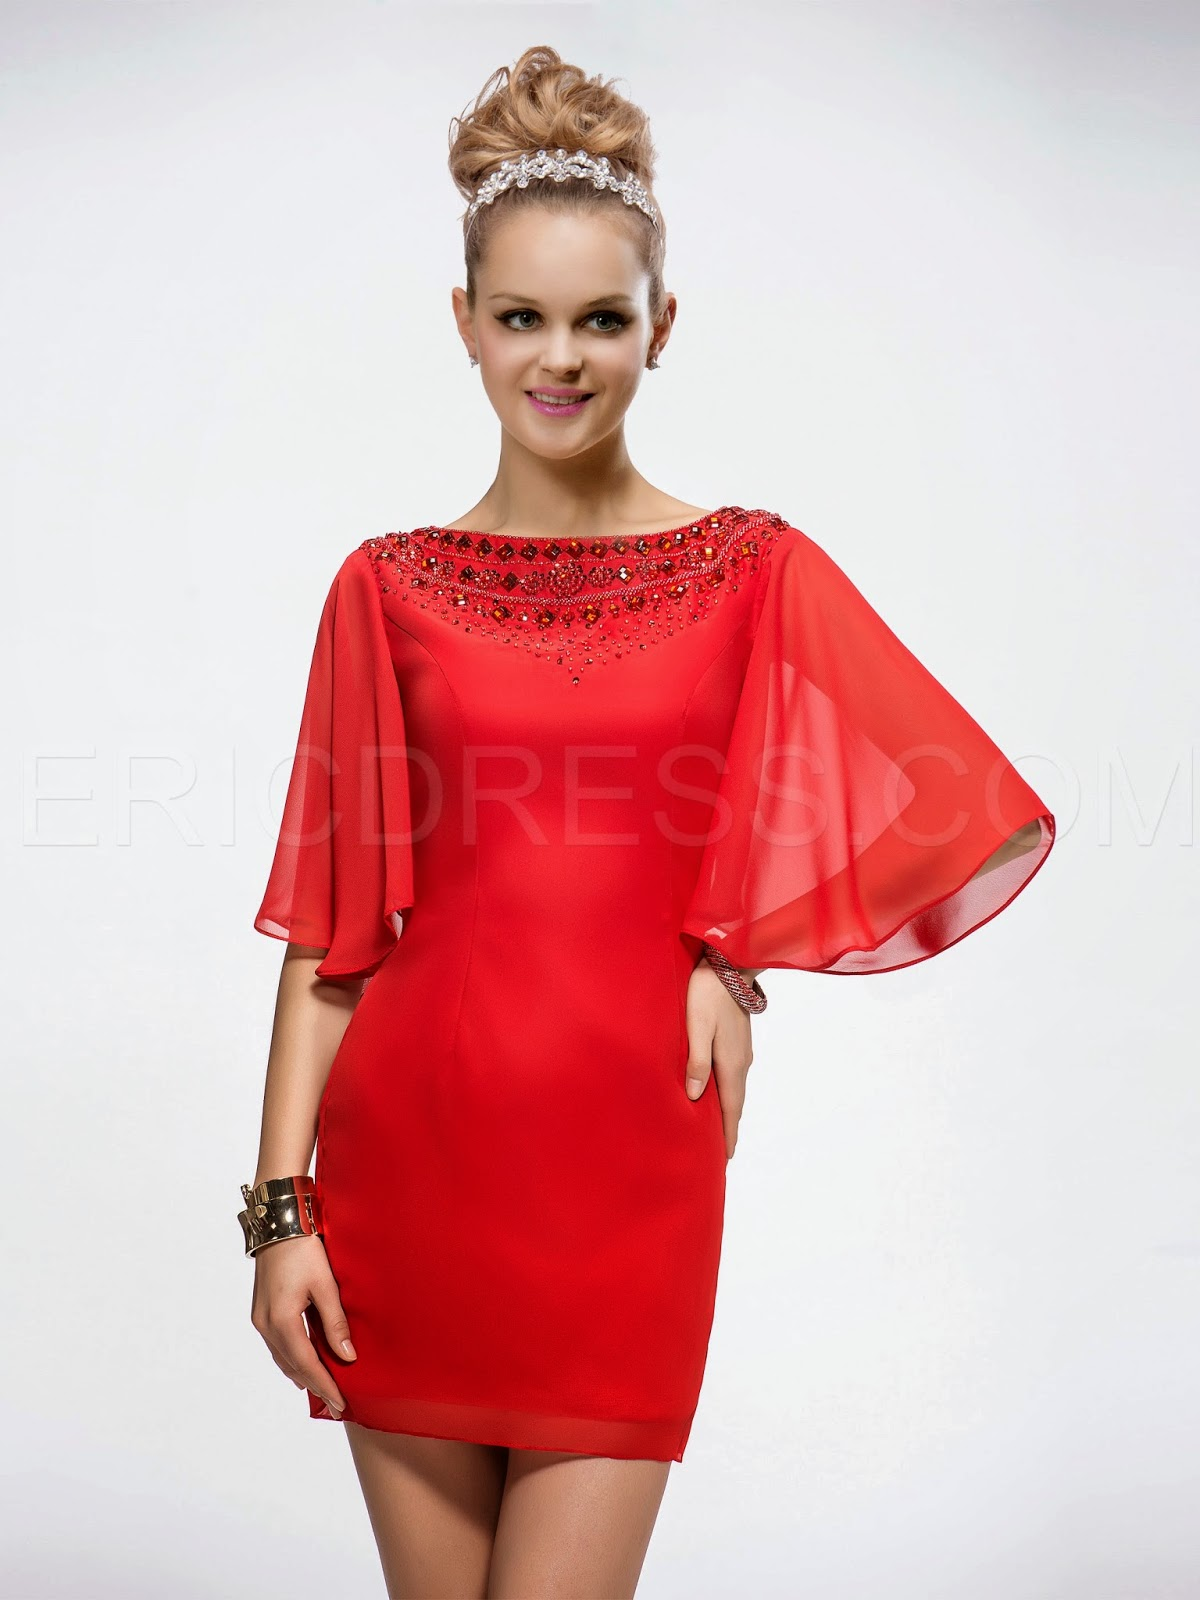 http://www.ericdress.com/product/Popular-Sheath-Bateau-Neckline-Half-Sleeves-Natural-Waistline-Short-Cocktail-Dress-10859575.html